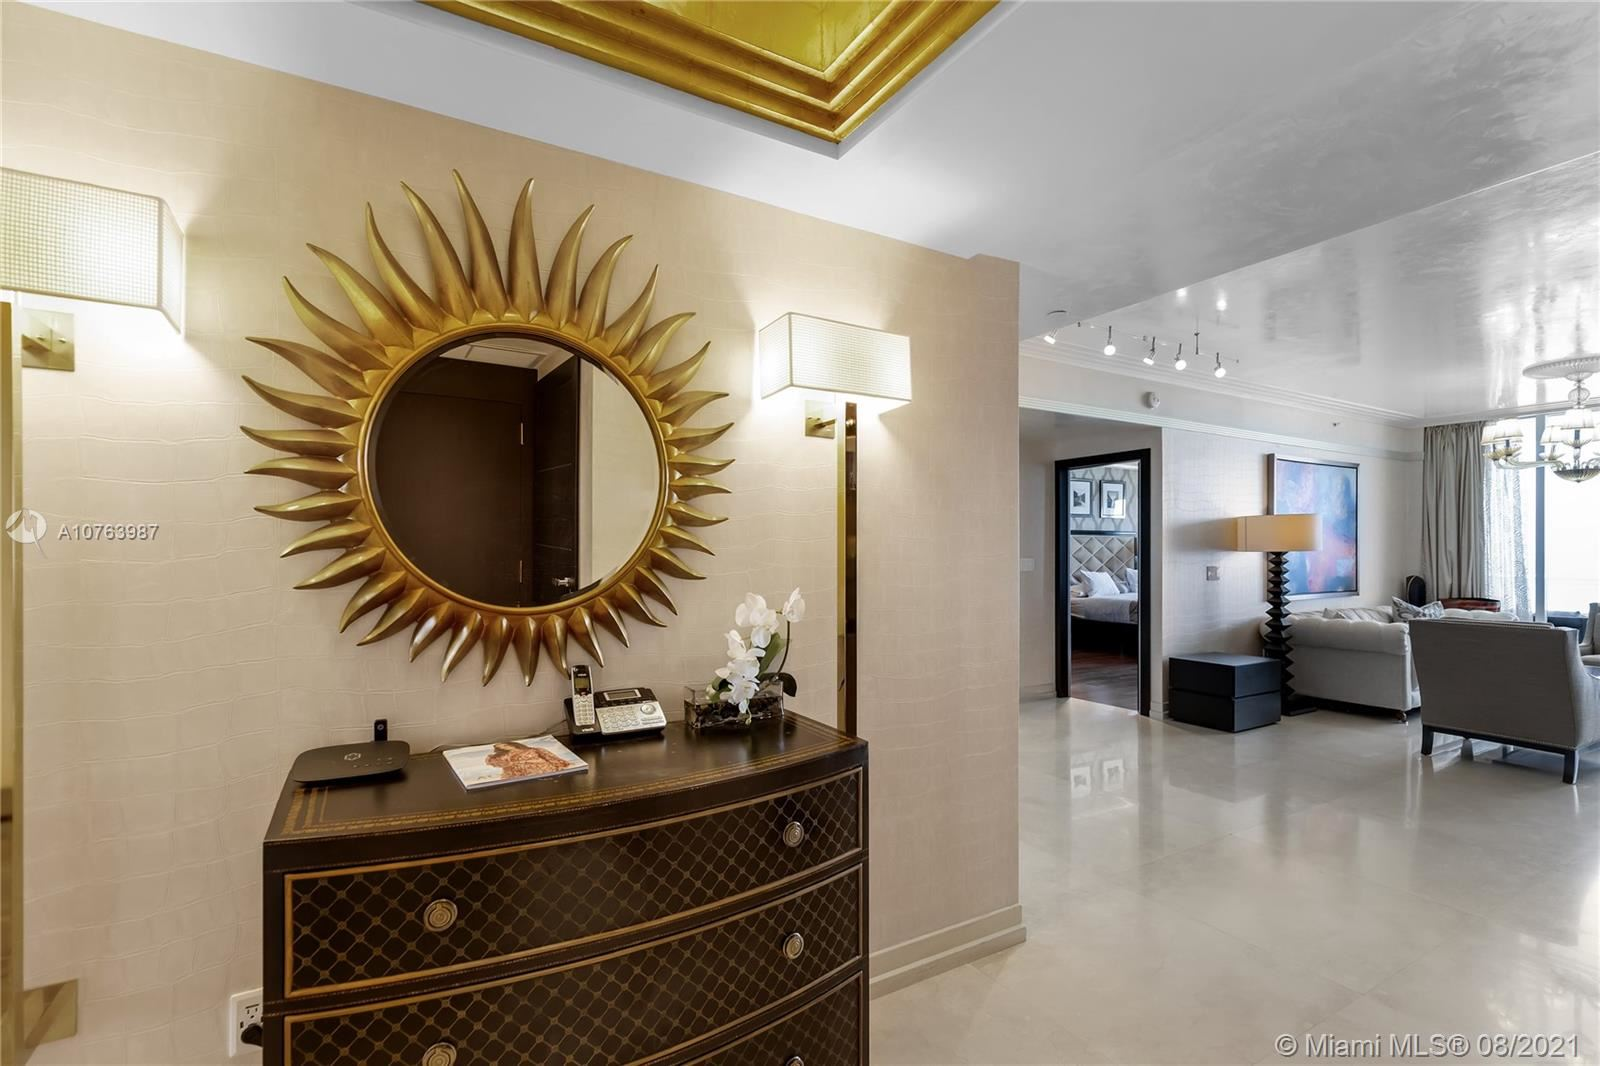 17875 Collins Ave #2005, Sunny Isles, FL 33160 - #: A10763987